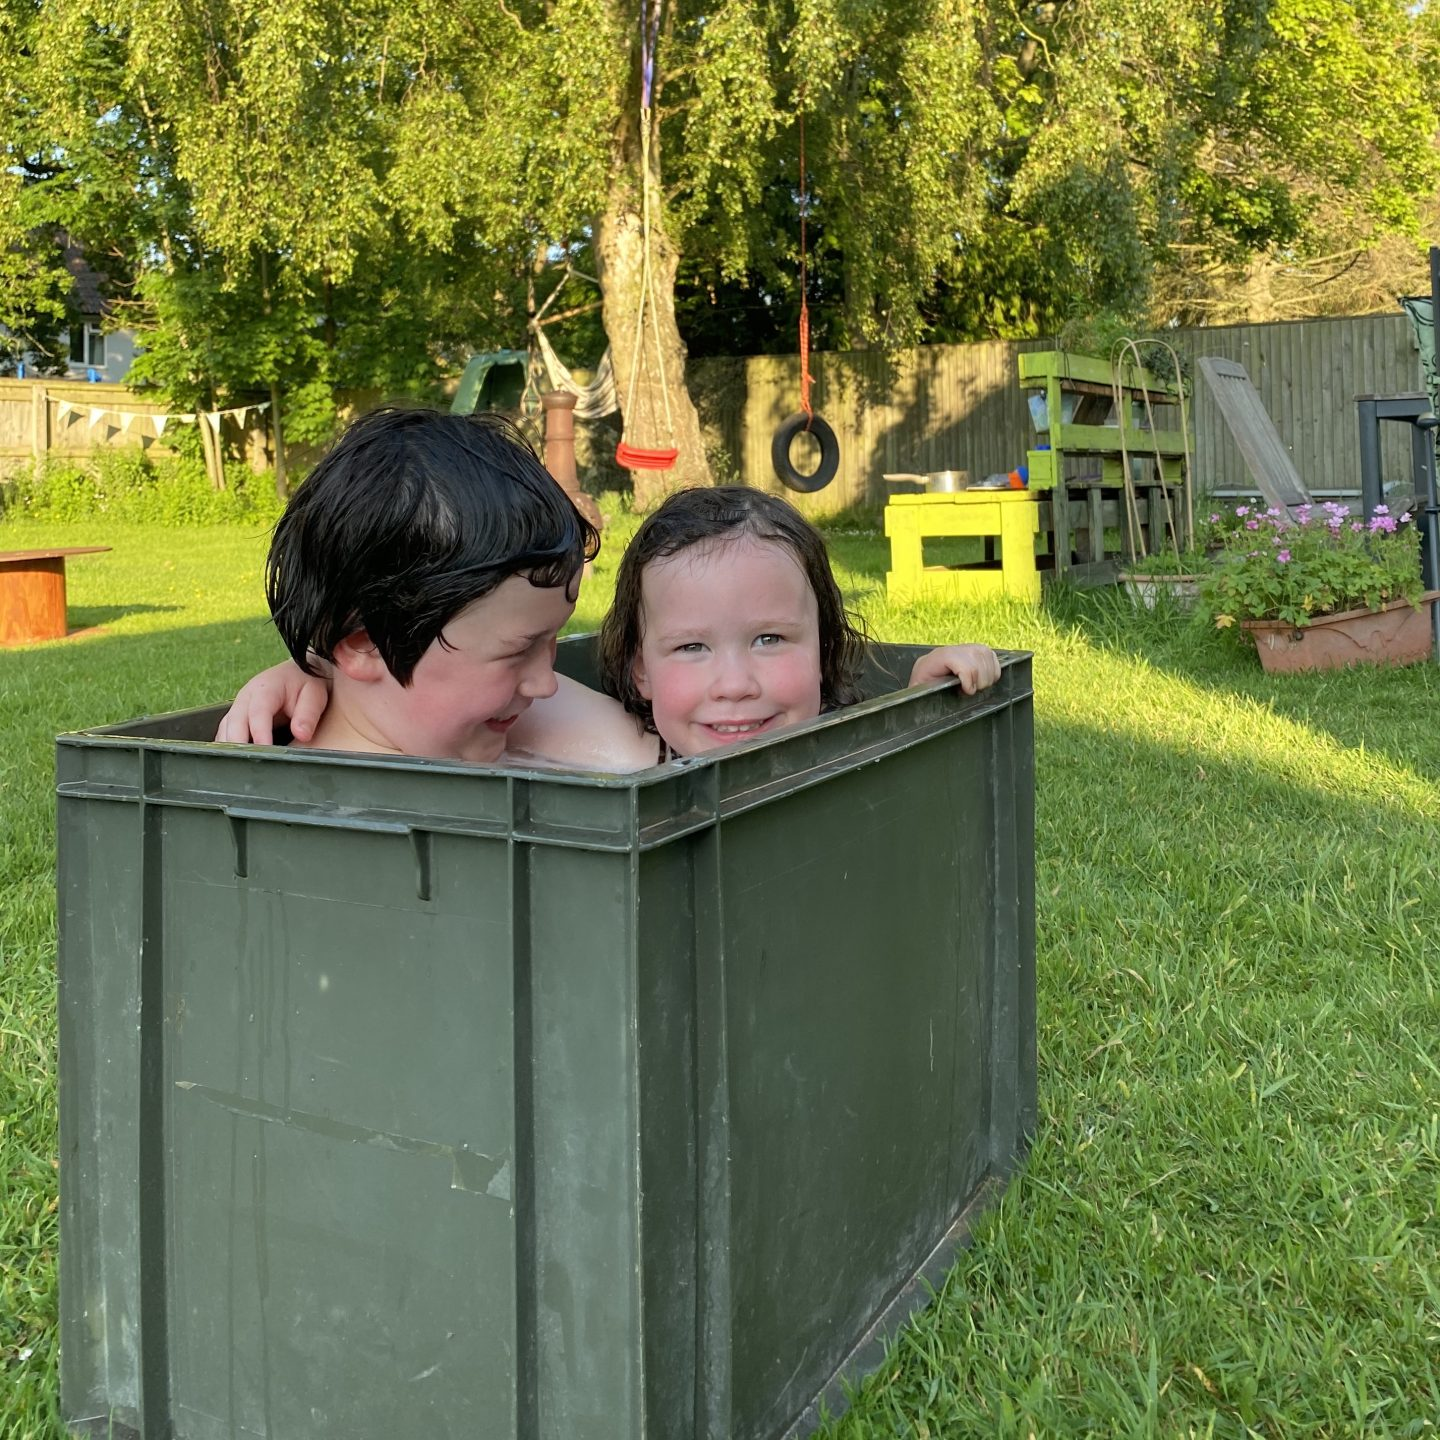 Two kids having an outdoor camping bath